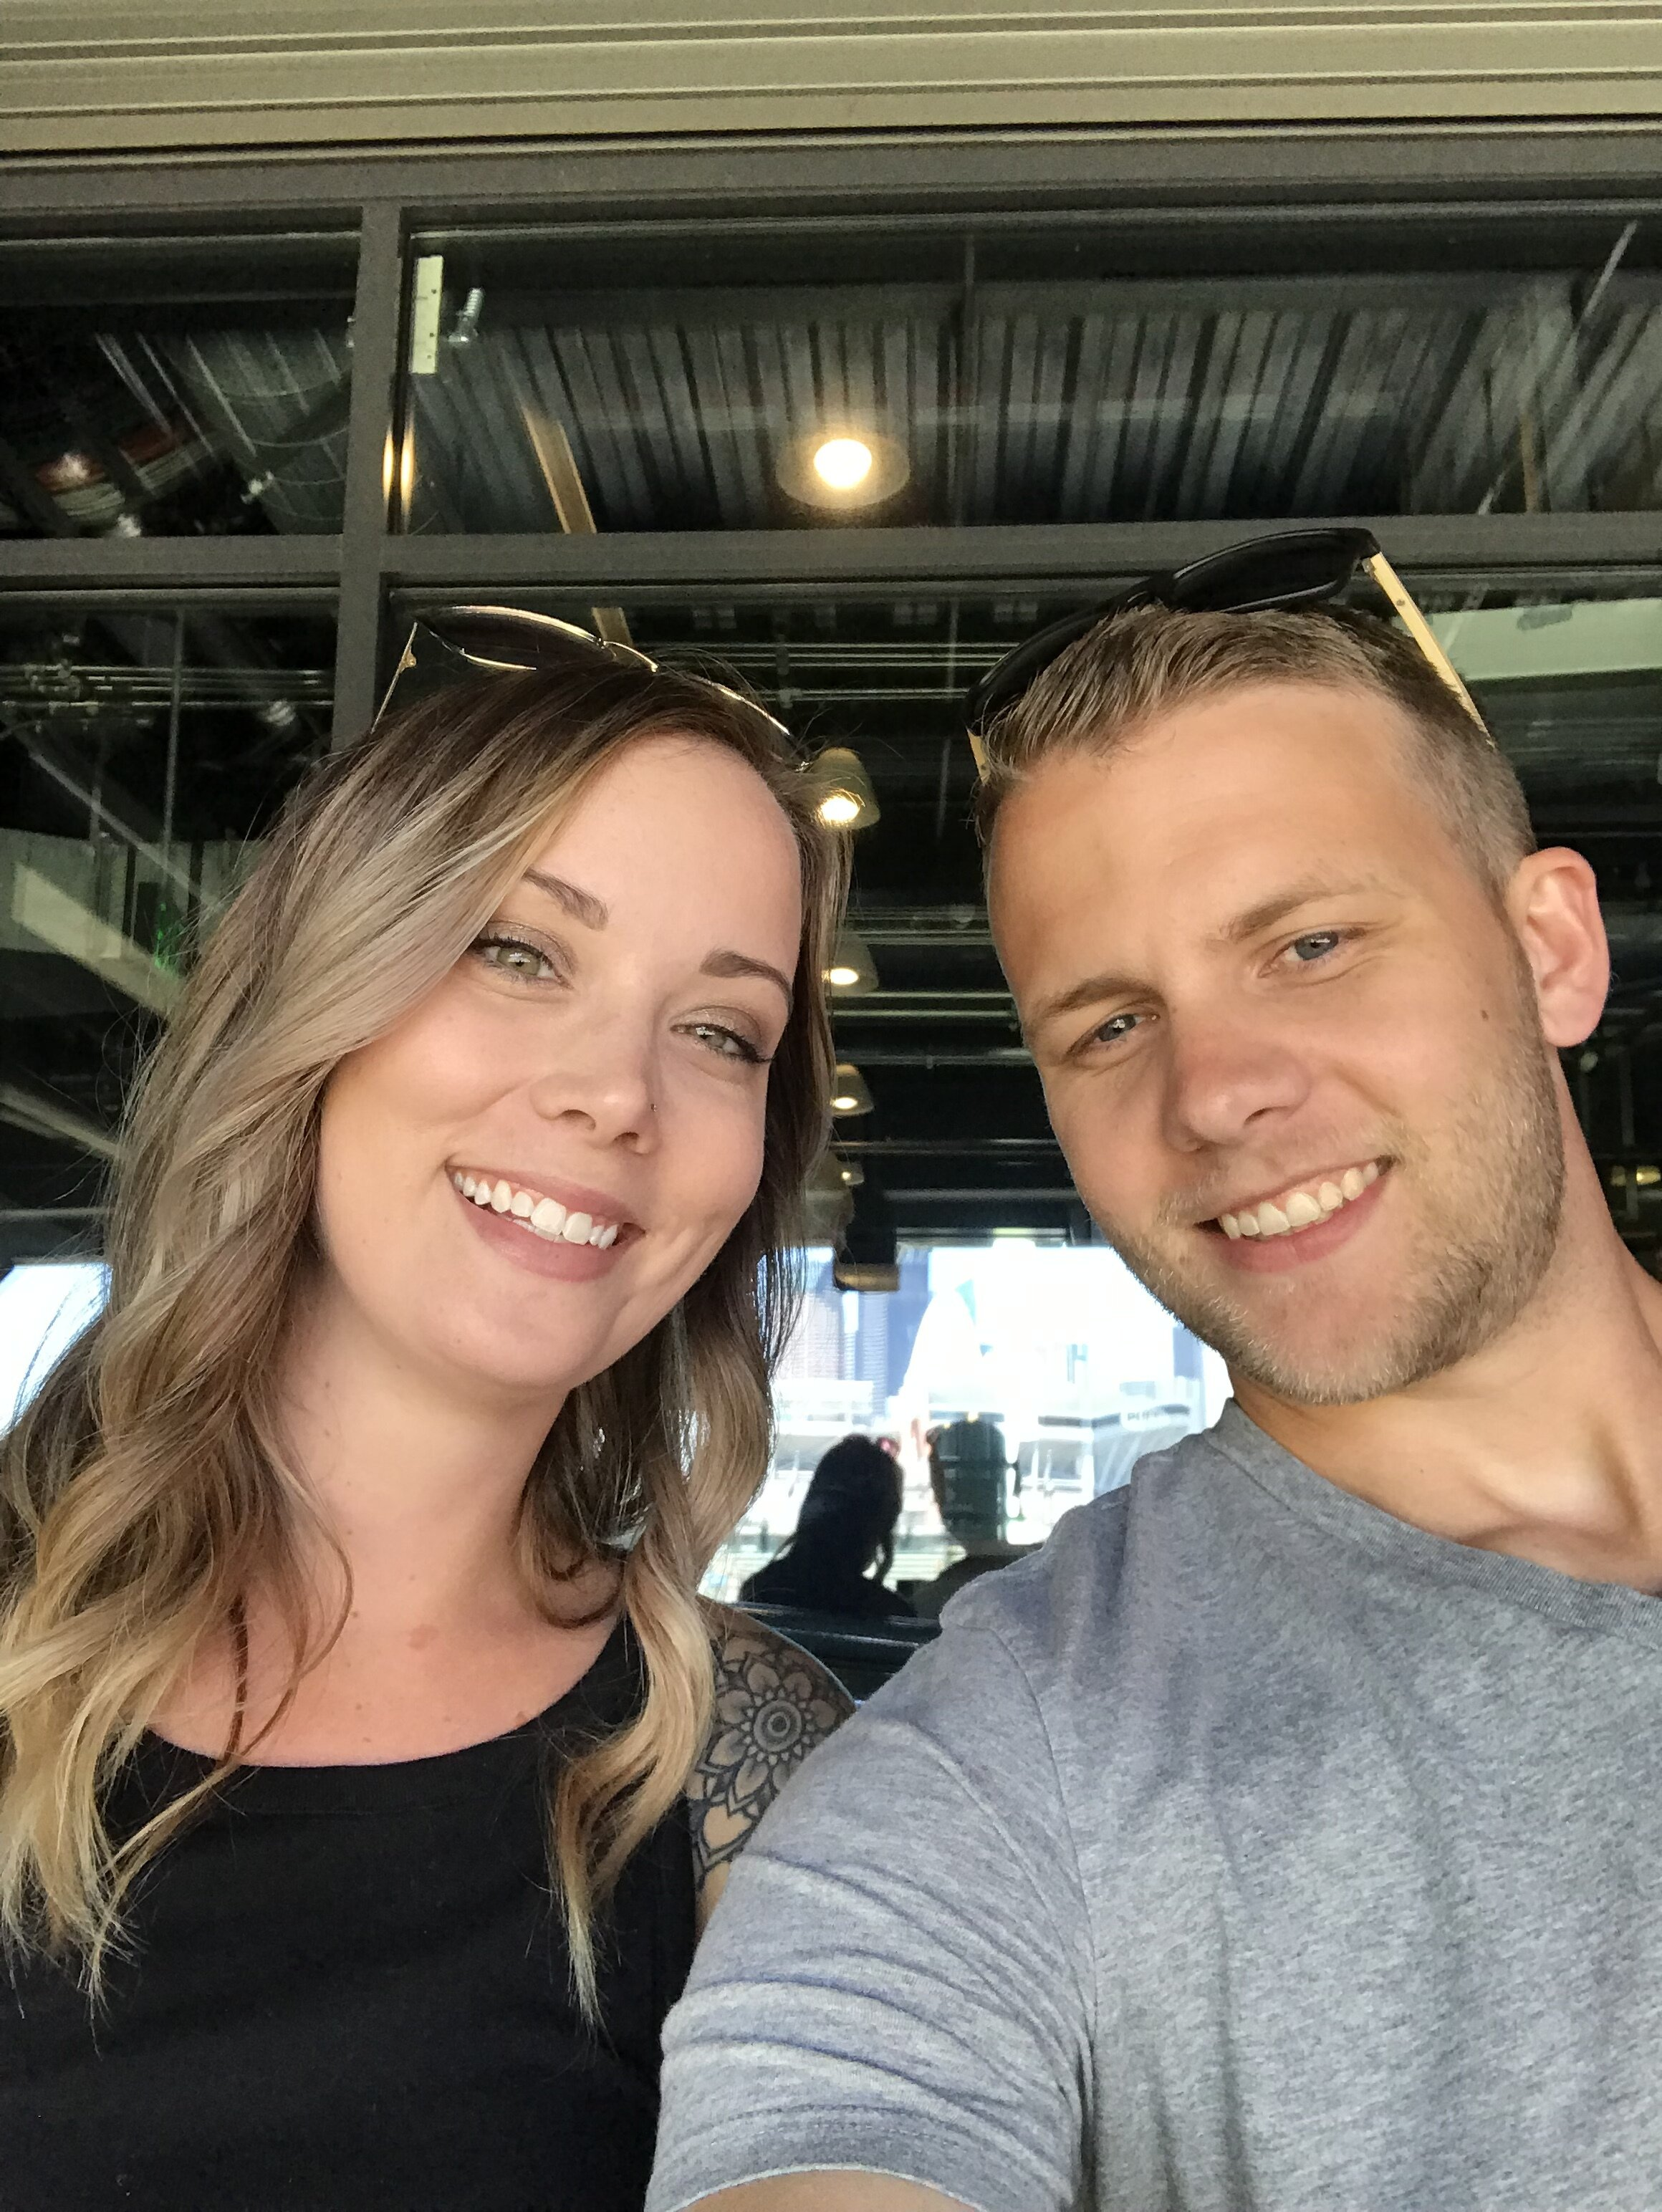 A picture of my wife and i at a baseball game.